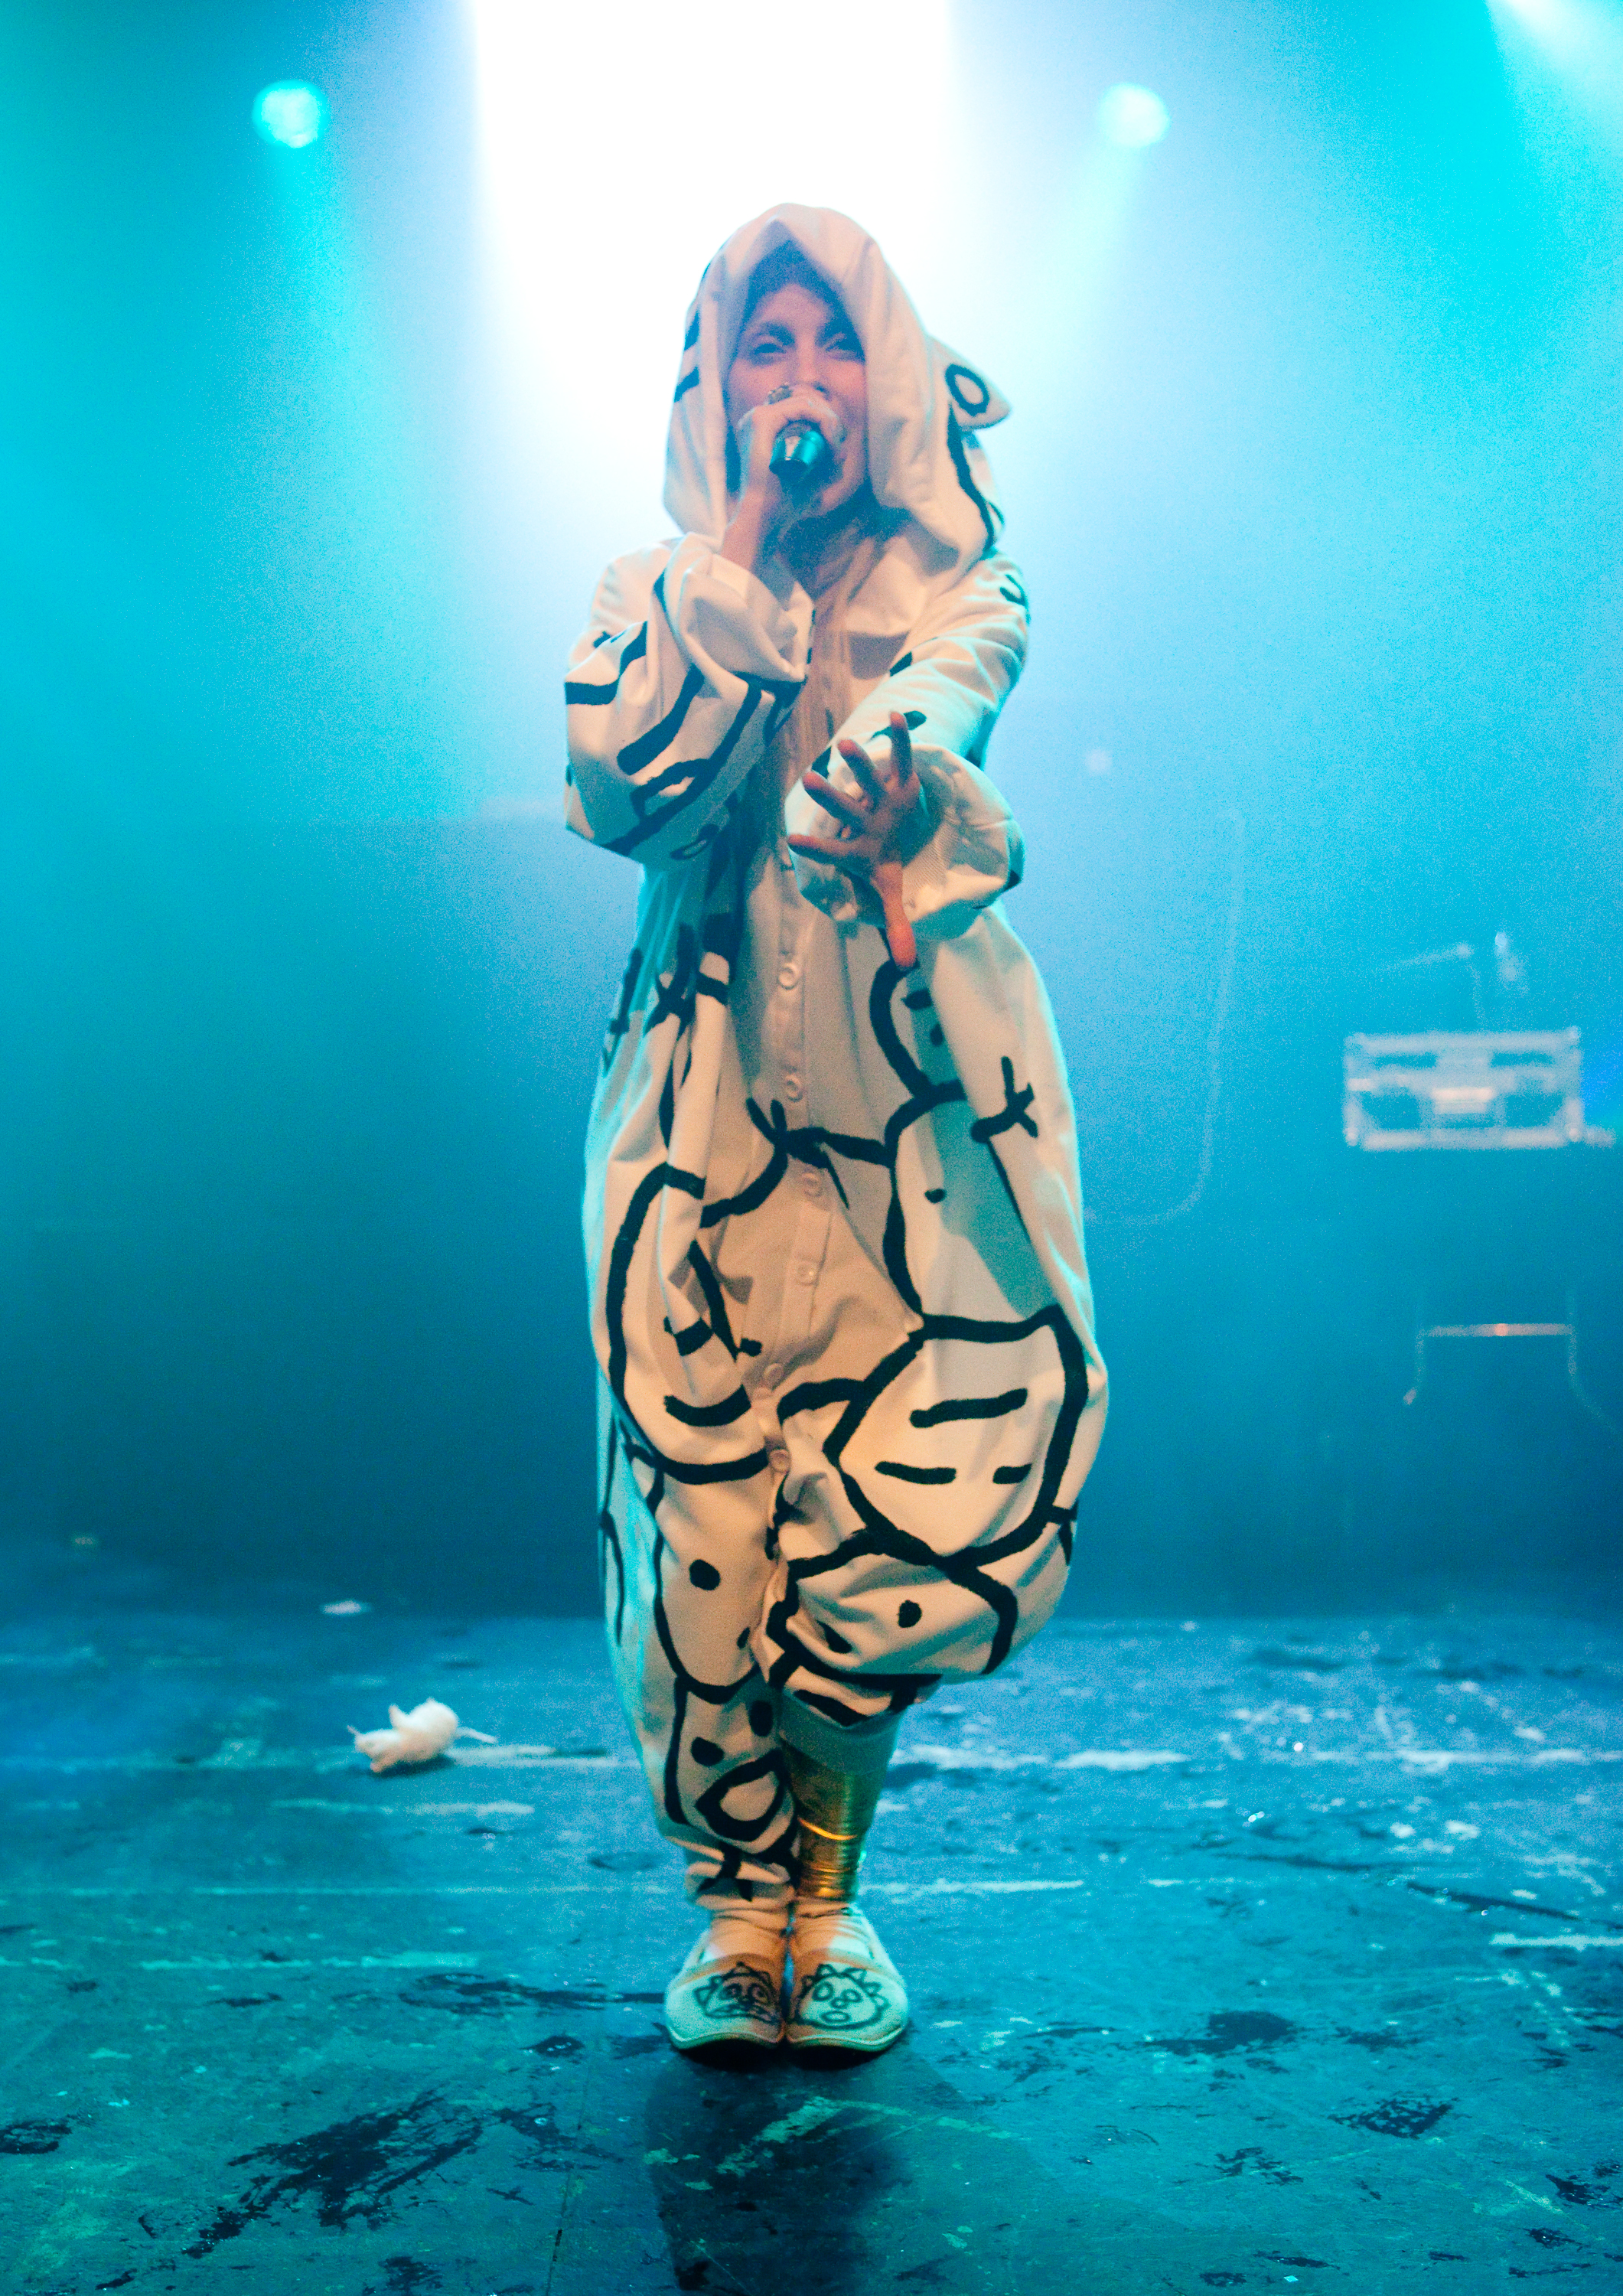 Yolandi_Visser_on_stage_with_rat